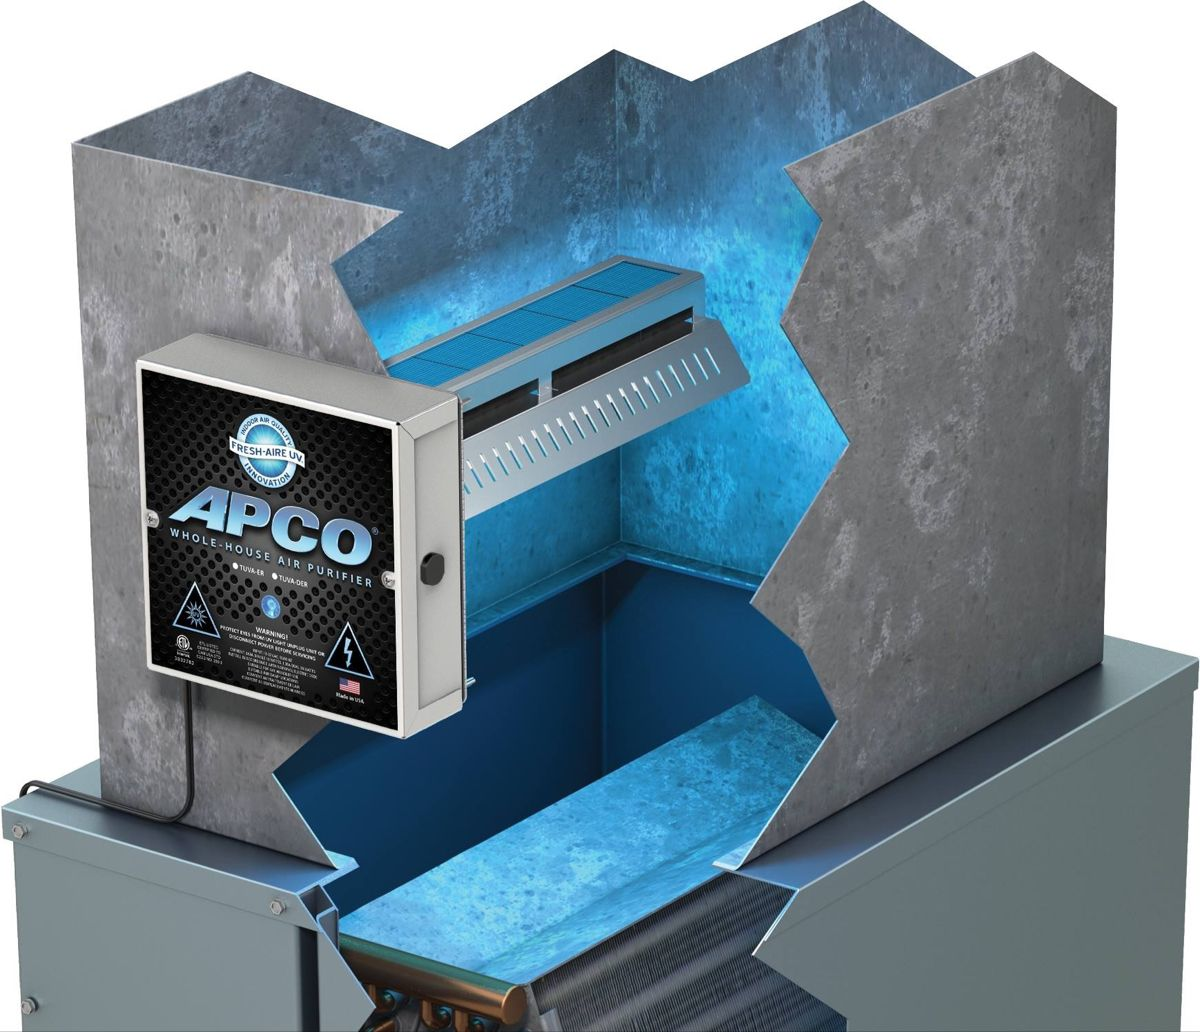 Apco UV Light in 2020 Energy efficient heating, Heating